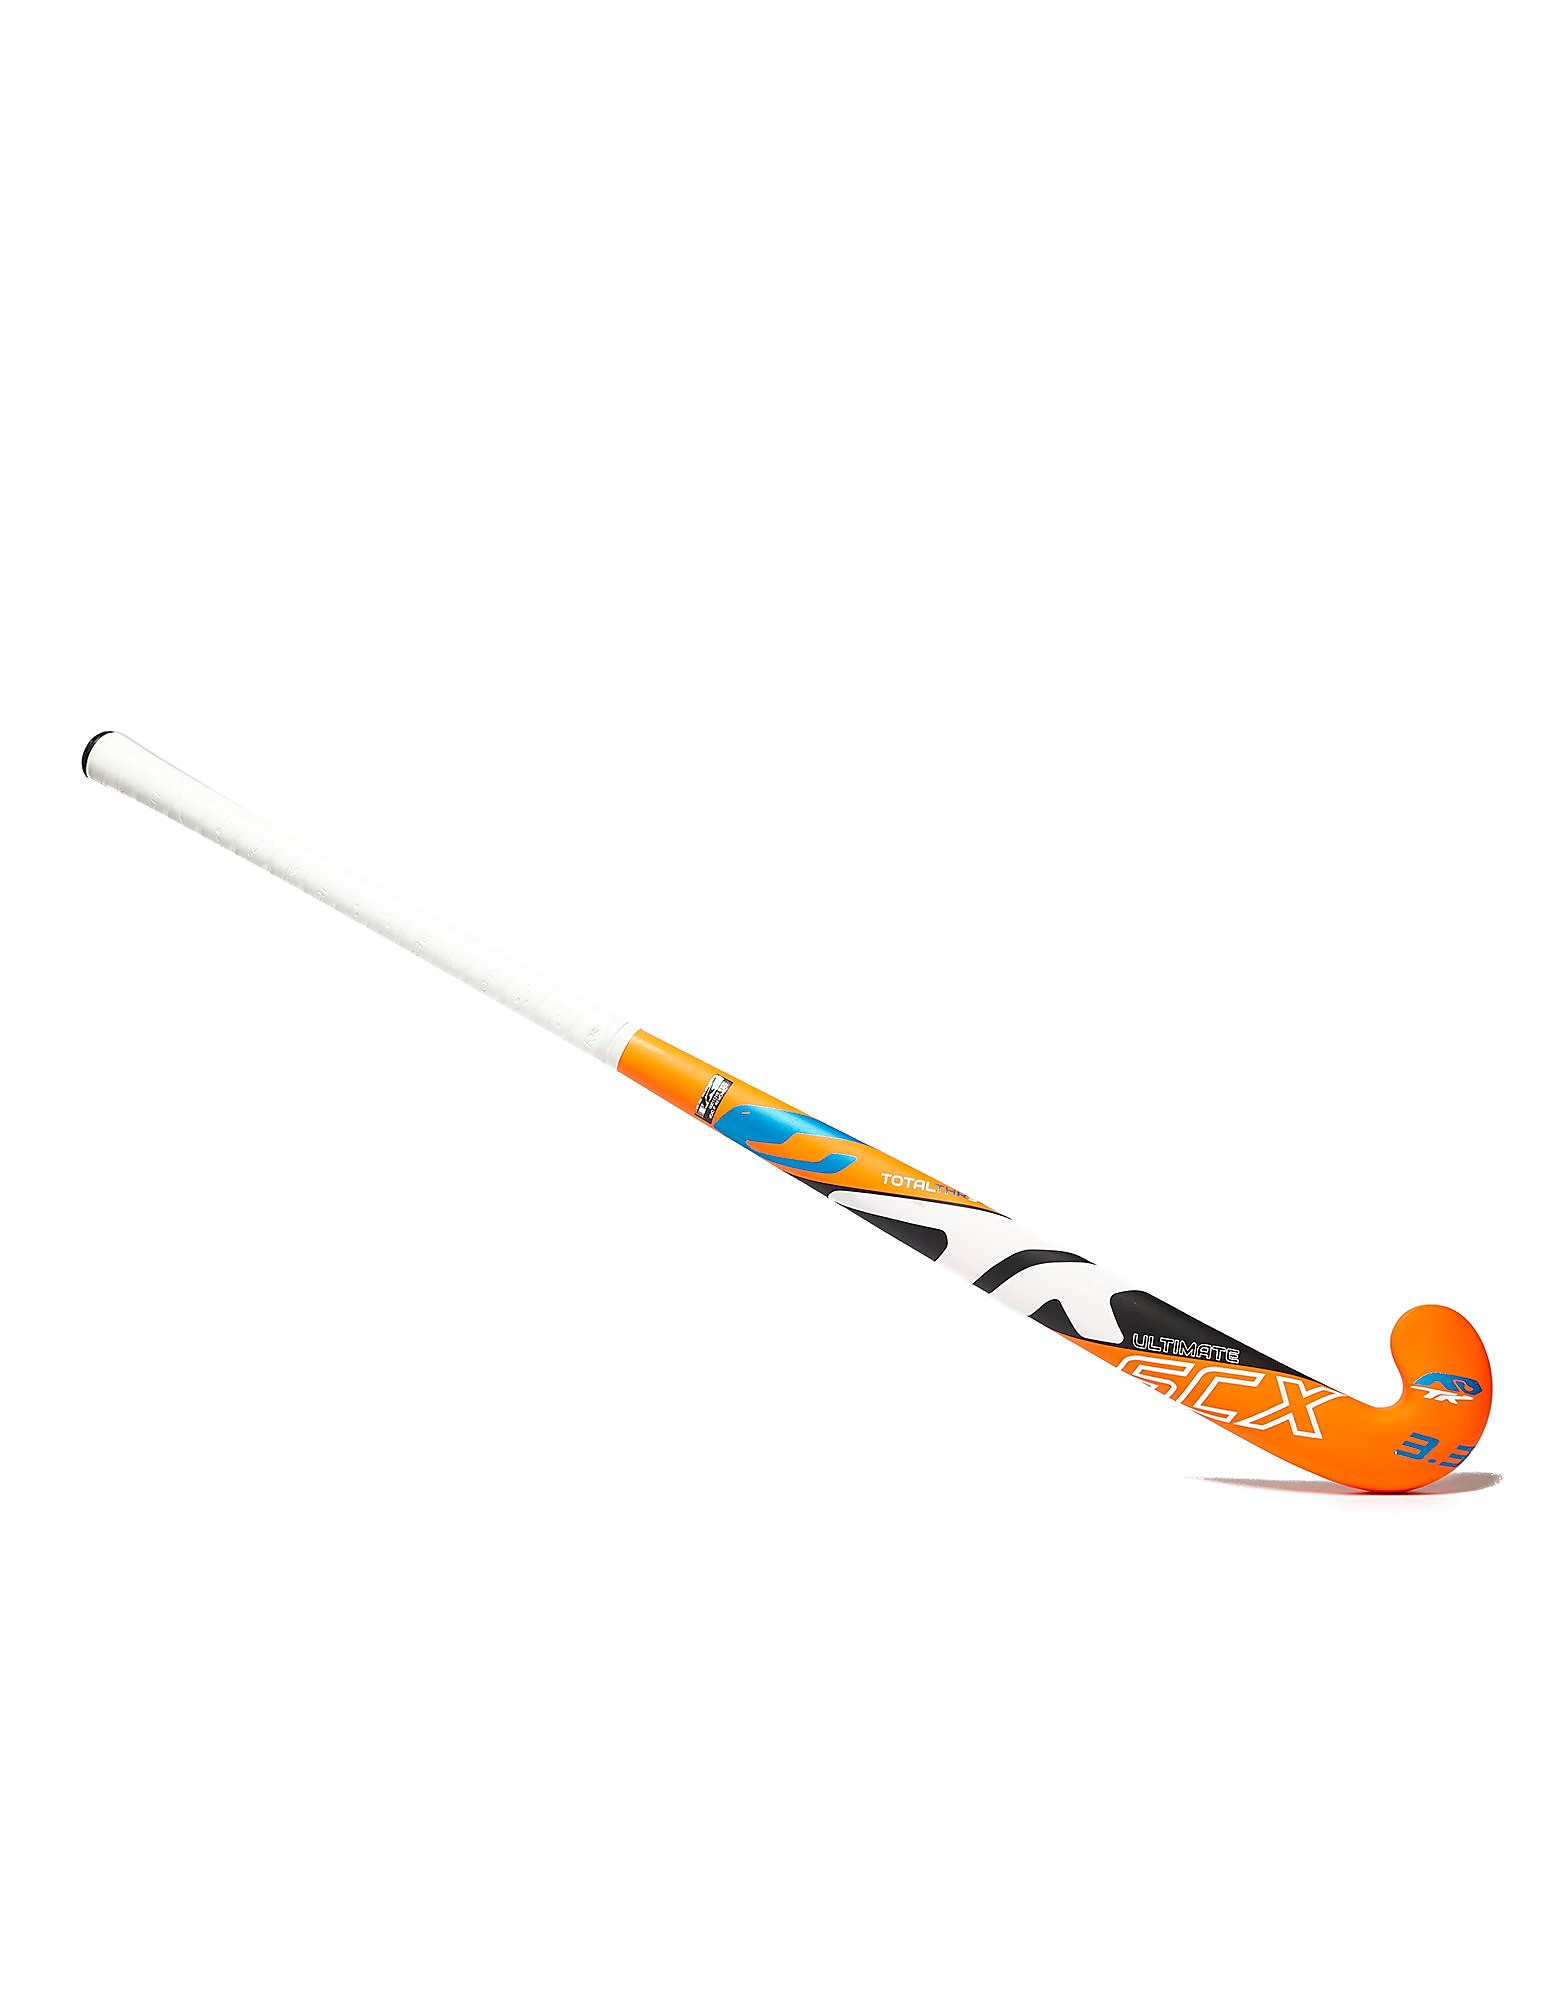 TK Hockey Total Three Scx 3.3 Ultimate Hockey Stick